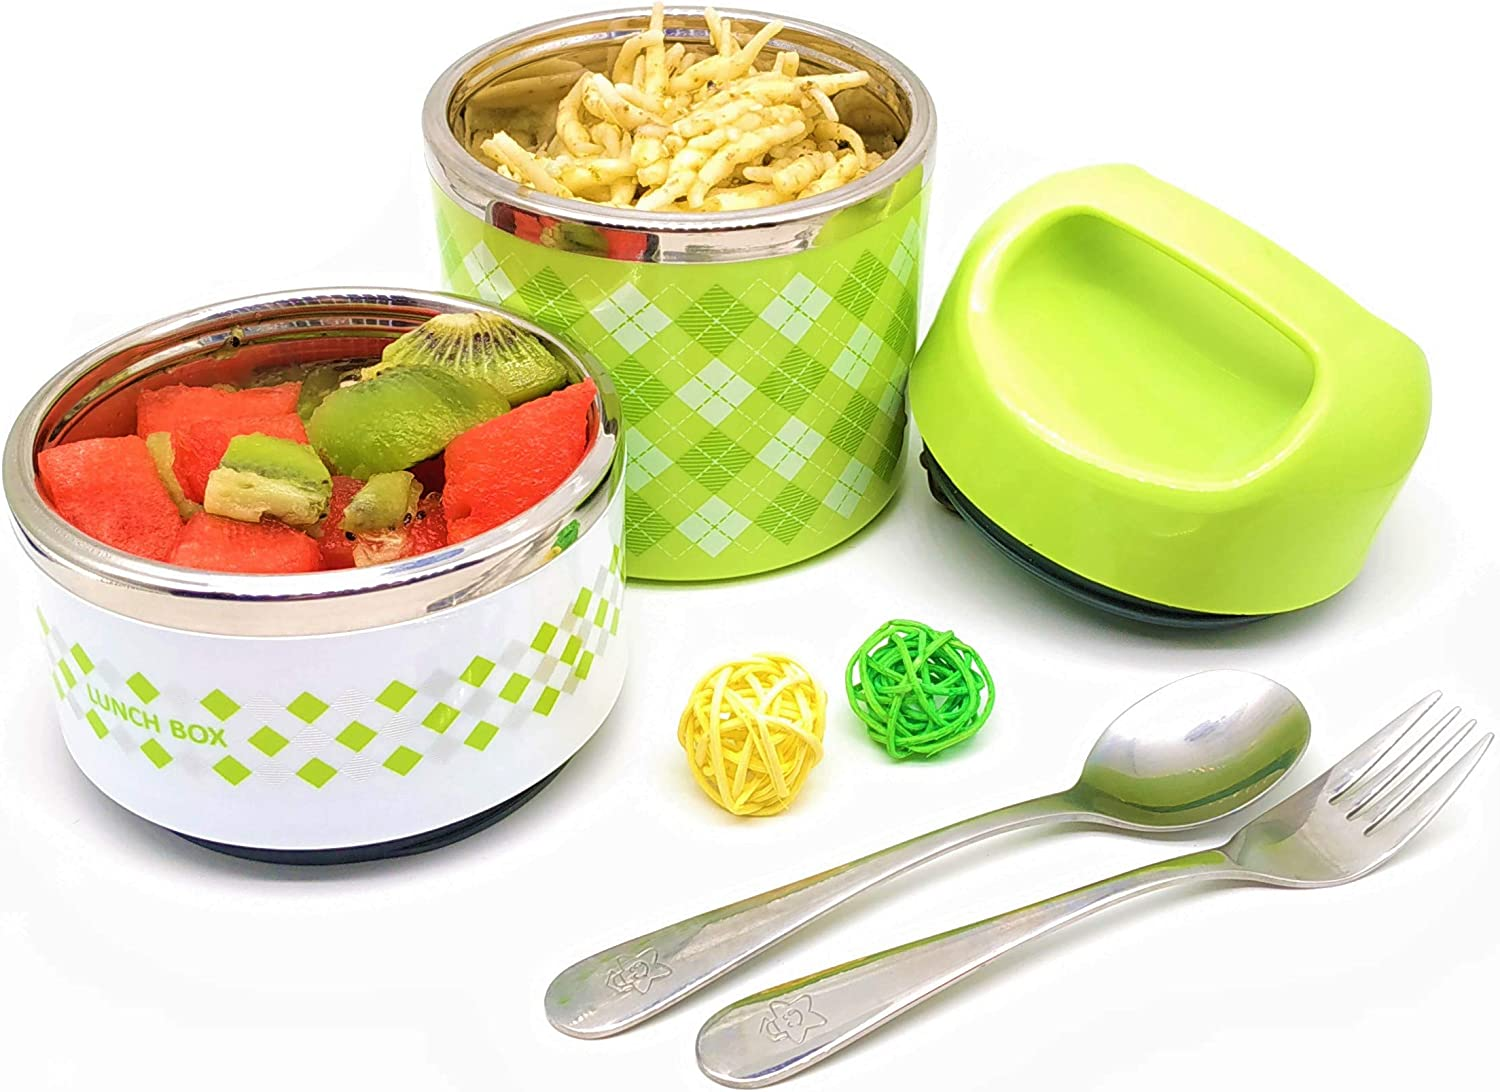 2 Tiers thermal Lunch Box 950ml food container with Handle, Stainless Steel Insulated Bento Box, Best for Keep SOLID food hot for 3 hour. Best for work,school,travel.(Green)